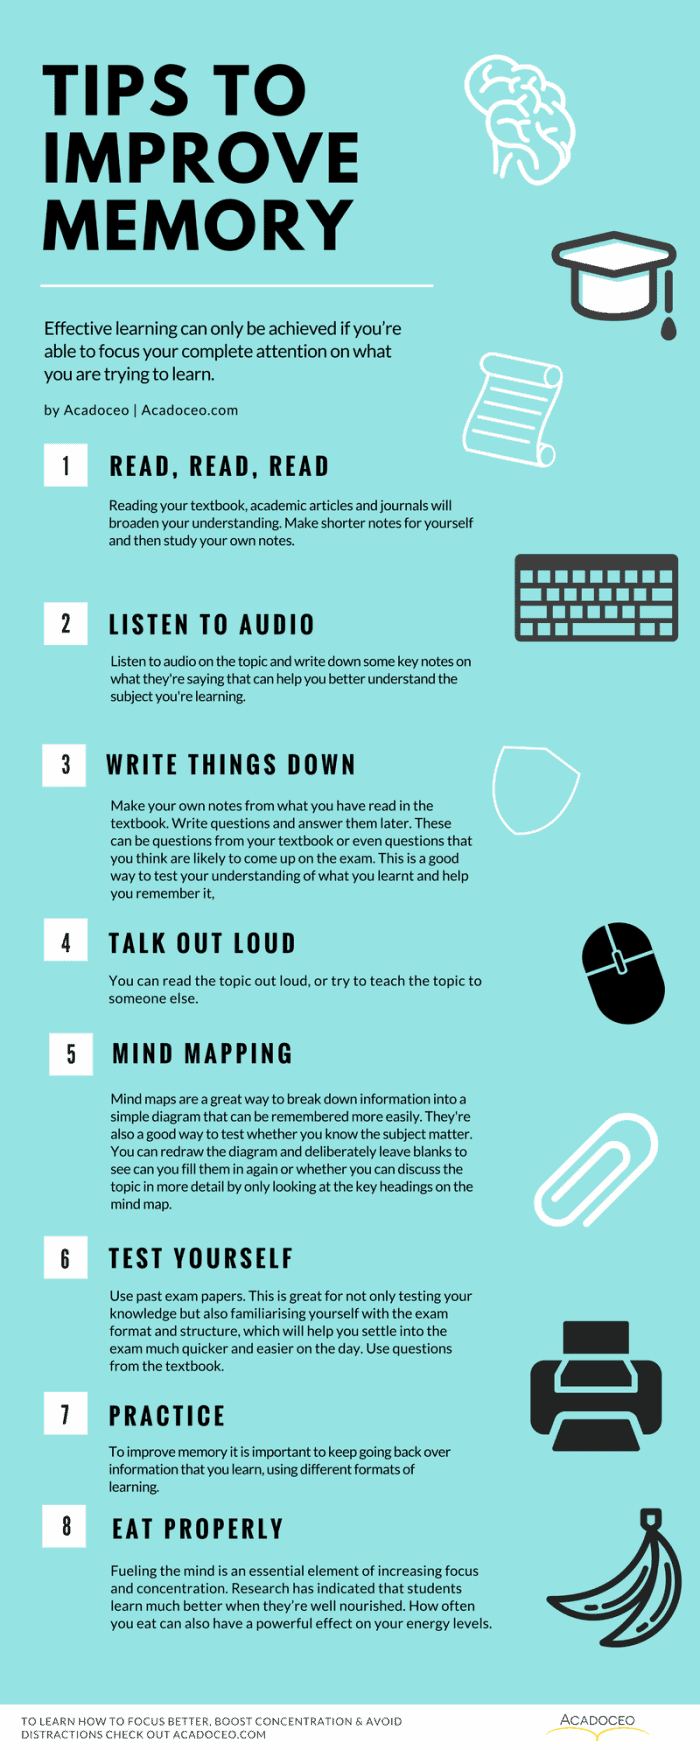 Tips-to-improve-memory-infographic